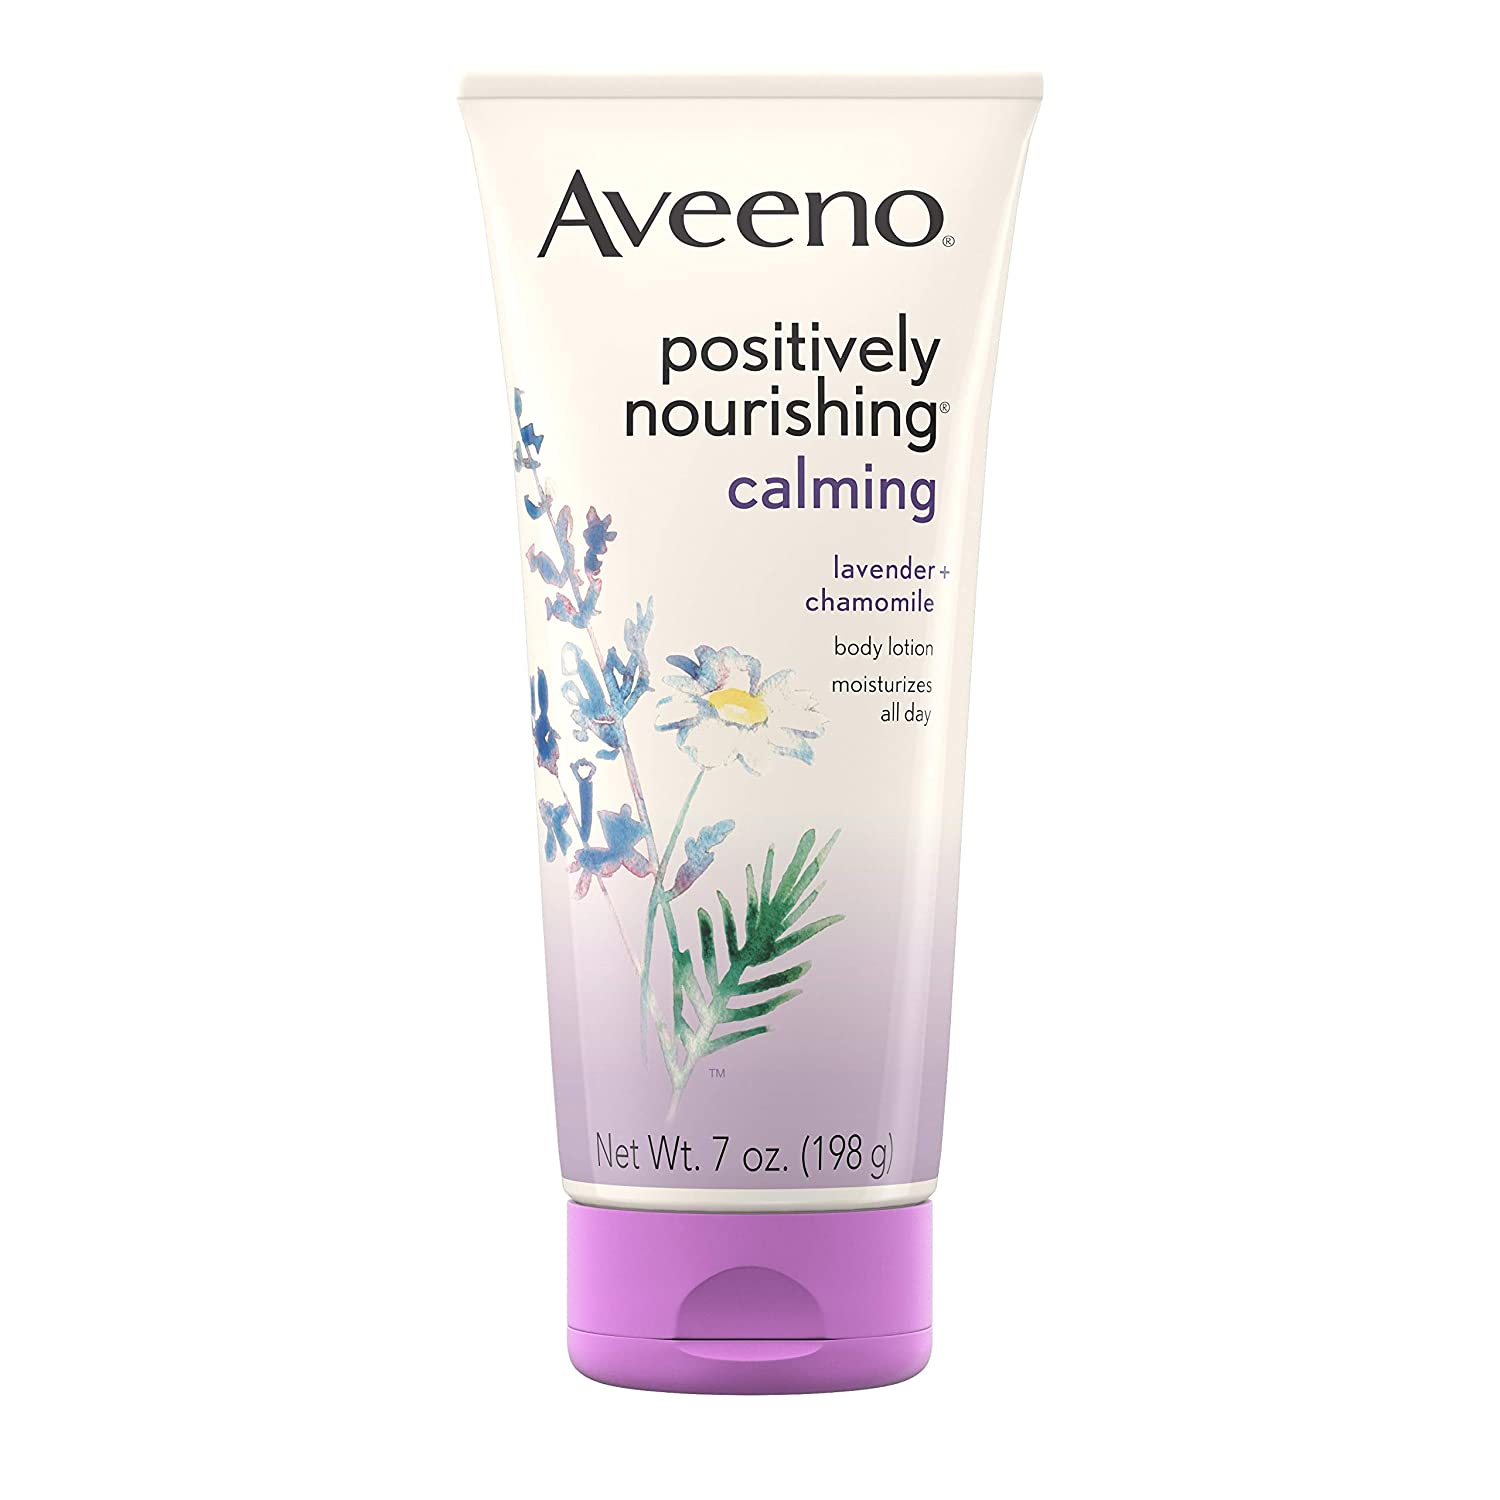 Aveeno Positively Nourishing Calming Body Lotion with Lavender, Chamomile, Soothing Oatmeal & Shea Butter, Daily Moisturizing Lotion for All-Day Hydration & Dry Skin Relief, 7 oz : Body Lotions : Beauty